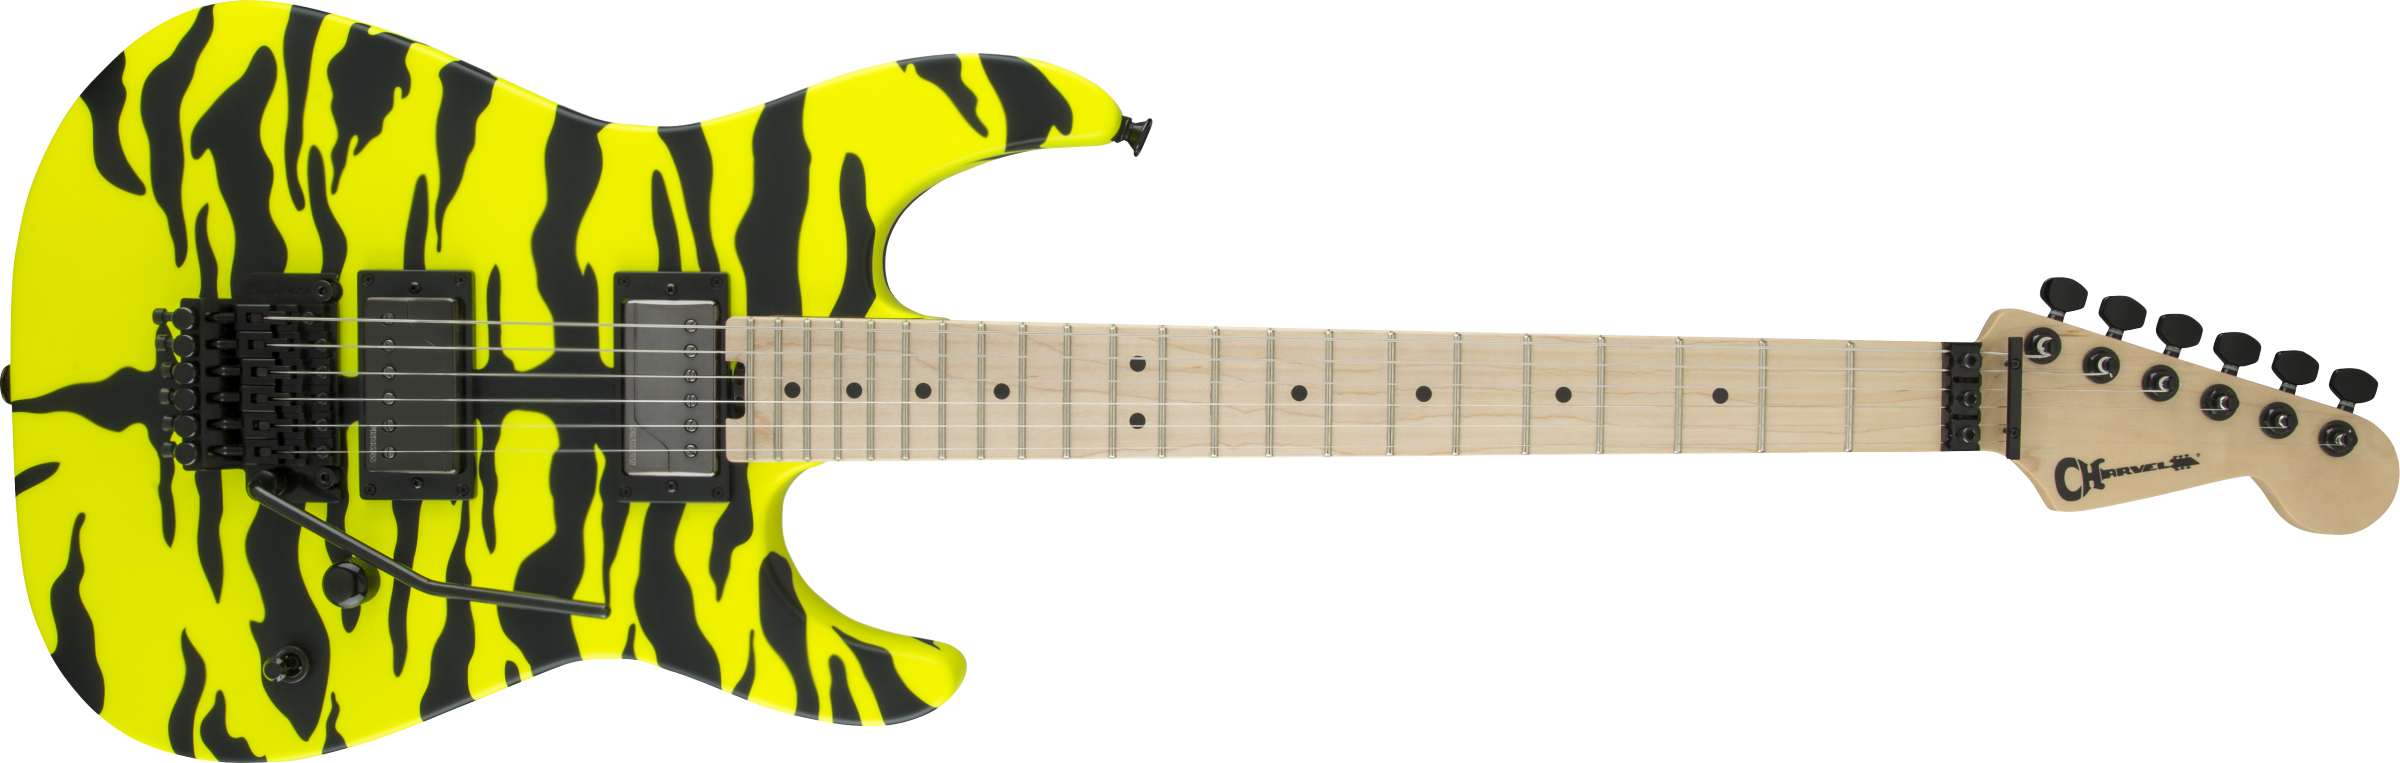 CHARVEL Satchel Signature Pro-Mod DK, Maple Fingerboard, Yellow Bengal